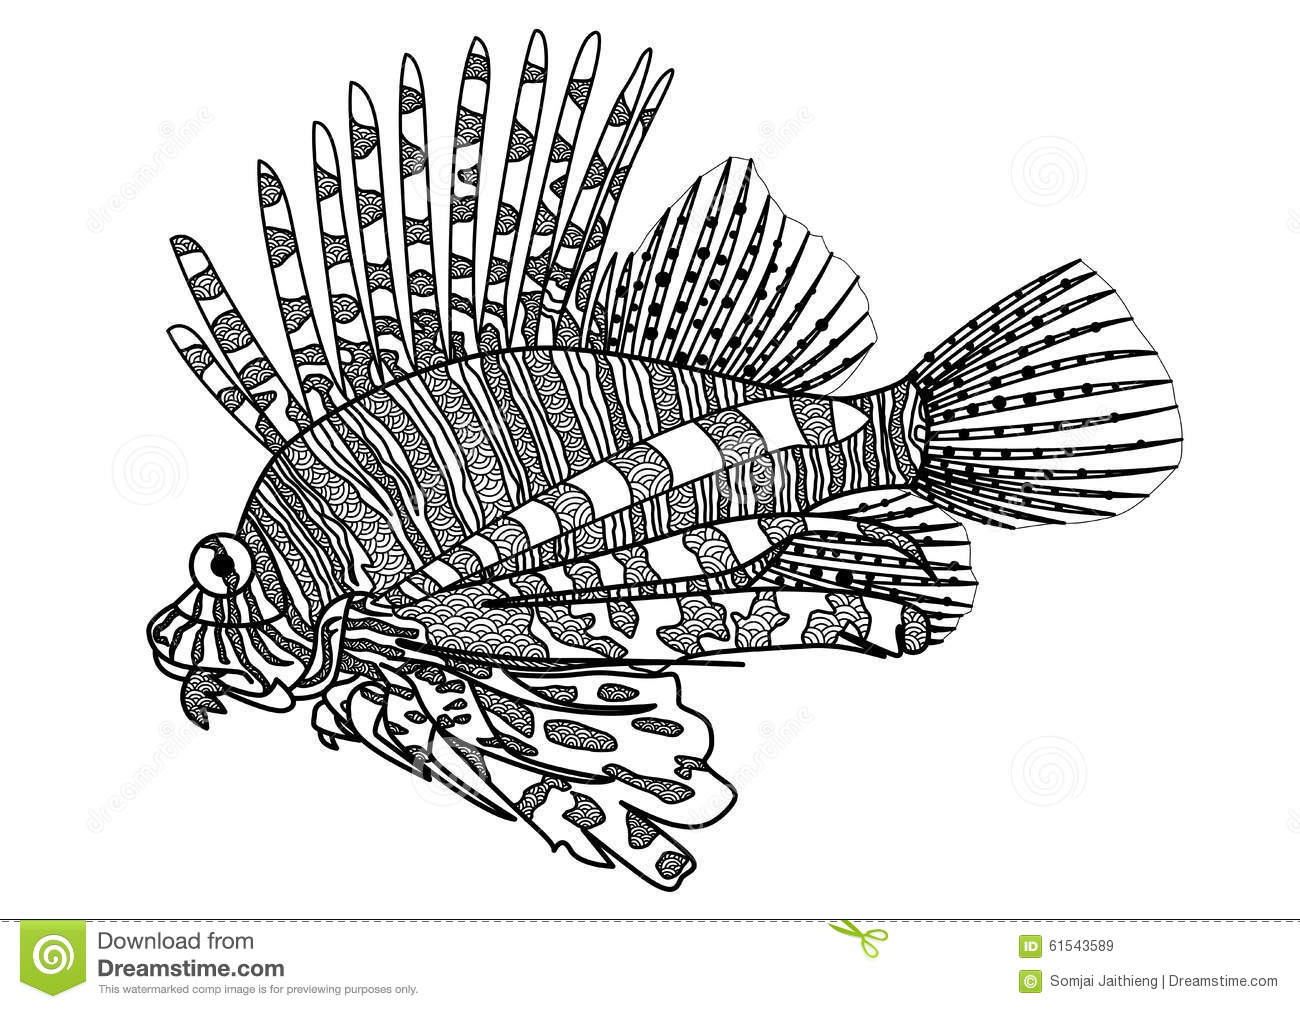 Coloring book for adults lion - Digital Drawing Zentangle Lion Fish For Coloring Book Tattoo Shirt Design Royalty Free Stock